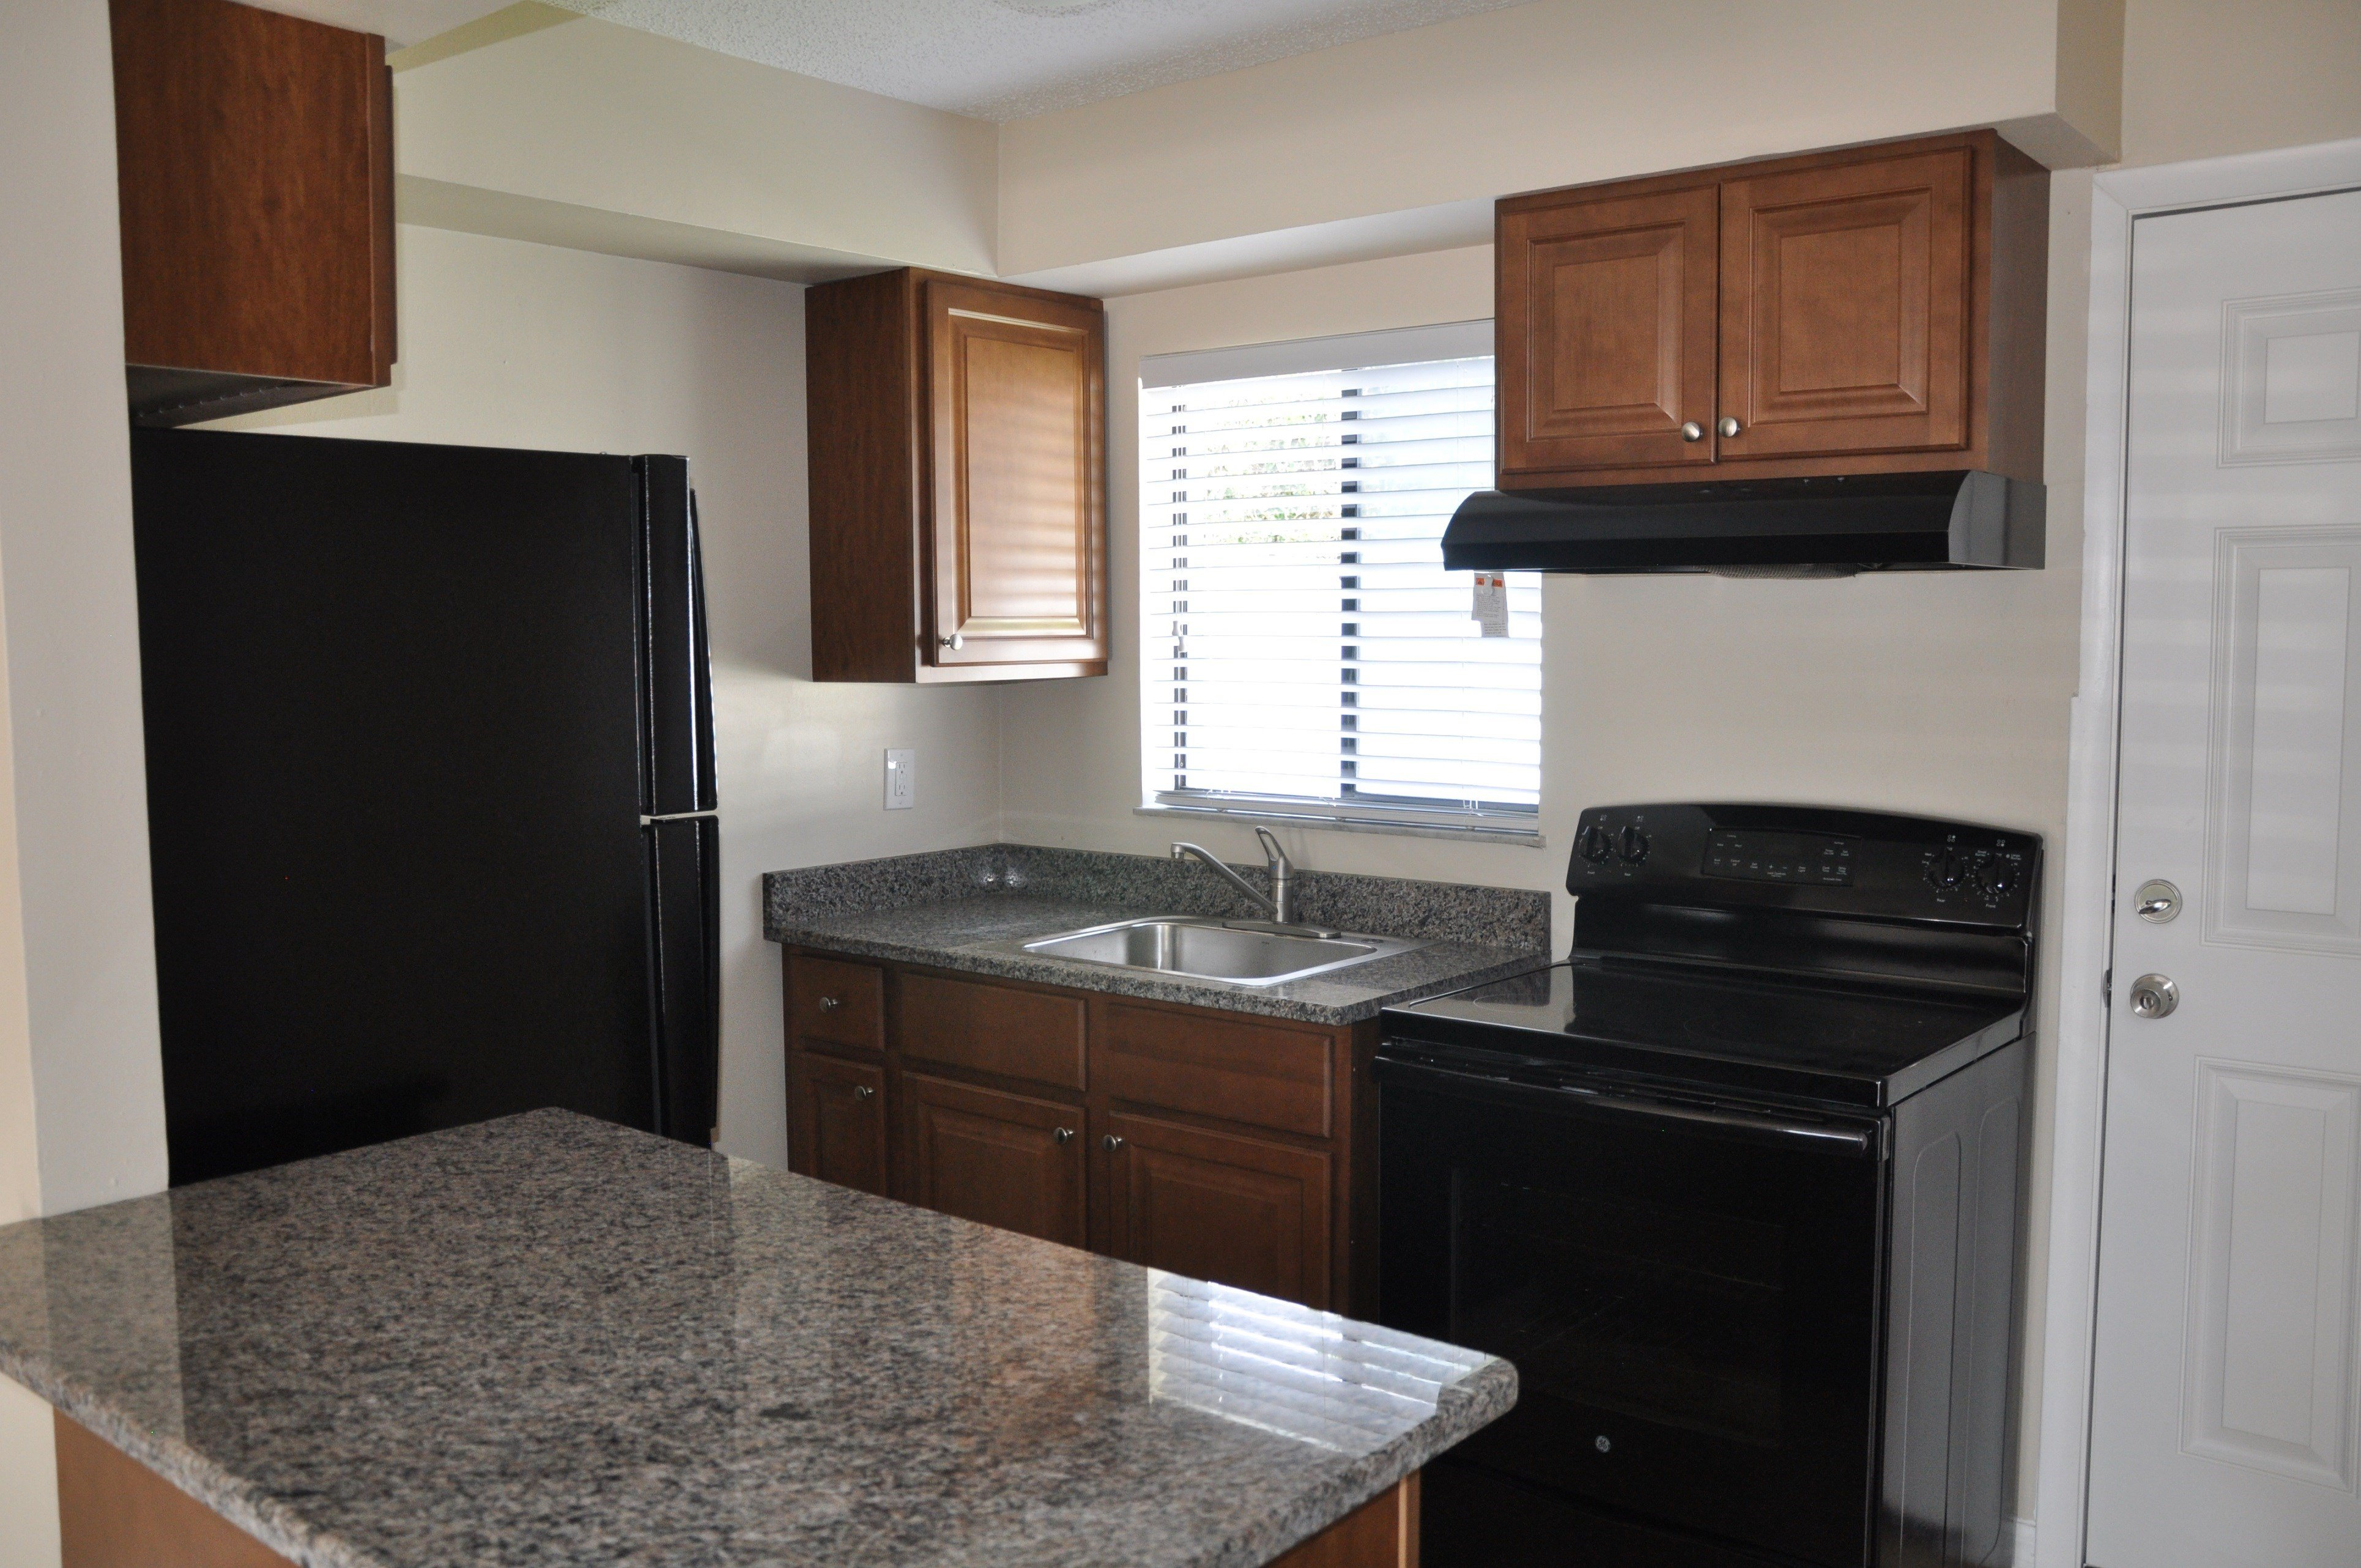 Best Section 8 Housing And Apartments For Rent In Dade City Pasco Florida With Pictures